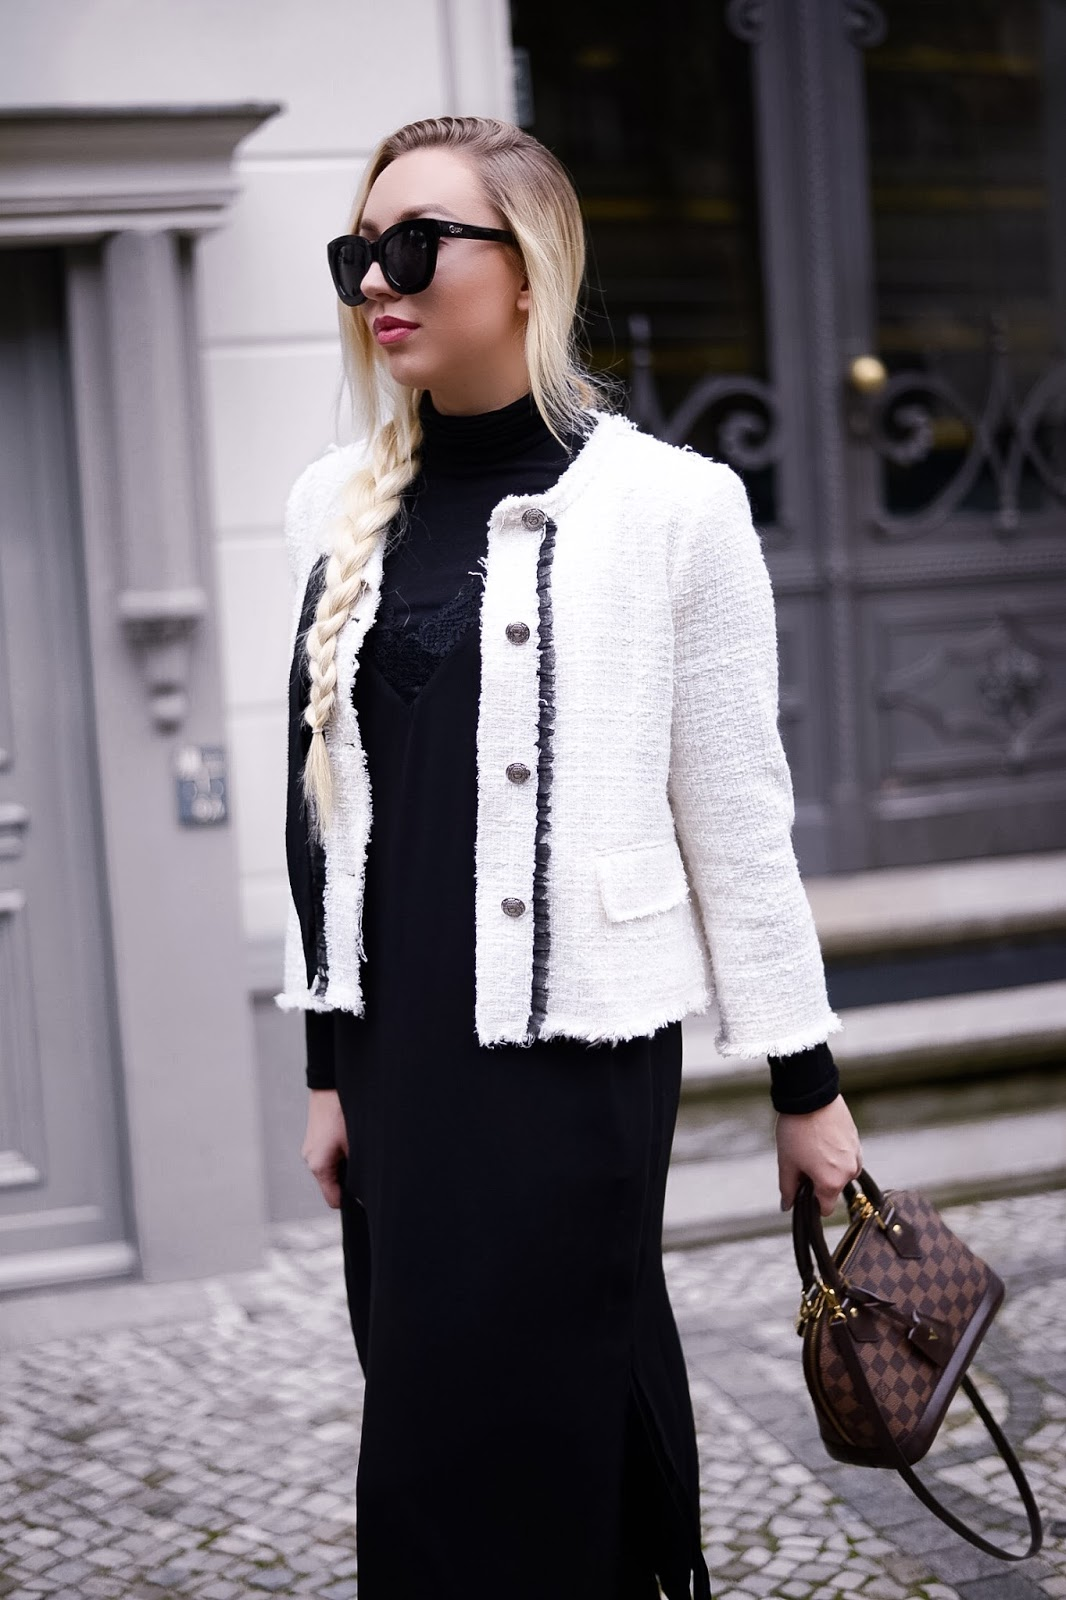 chanel inspired jacket from zara